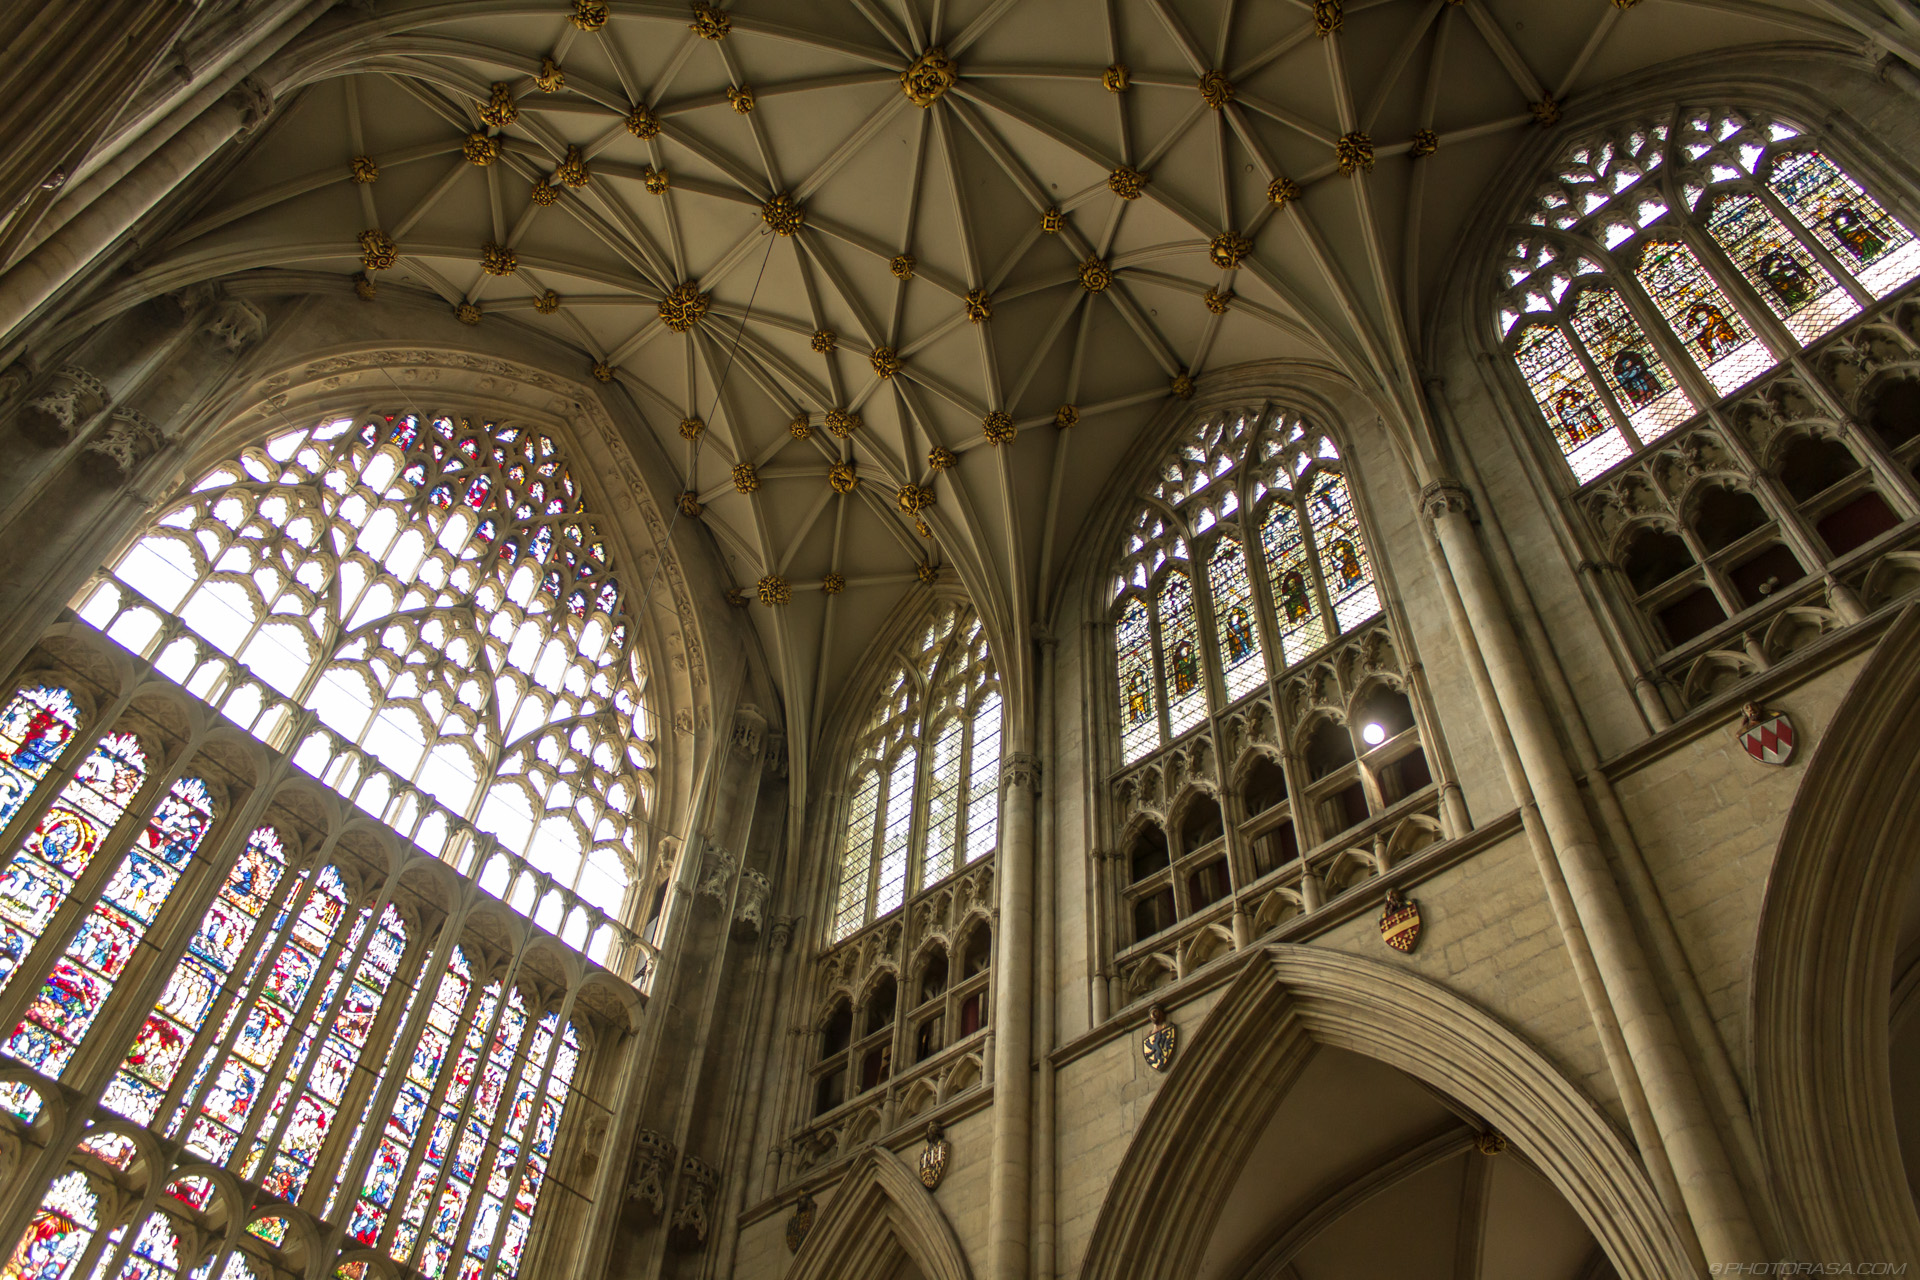 https://photorasa.com/yorkminster-cathedral/rose-window-and-ceiling/